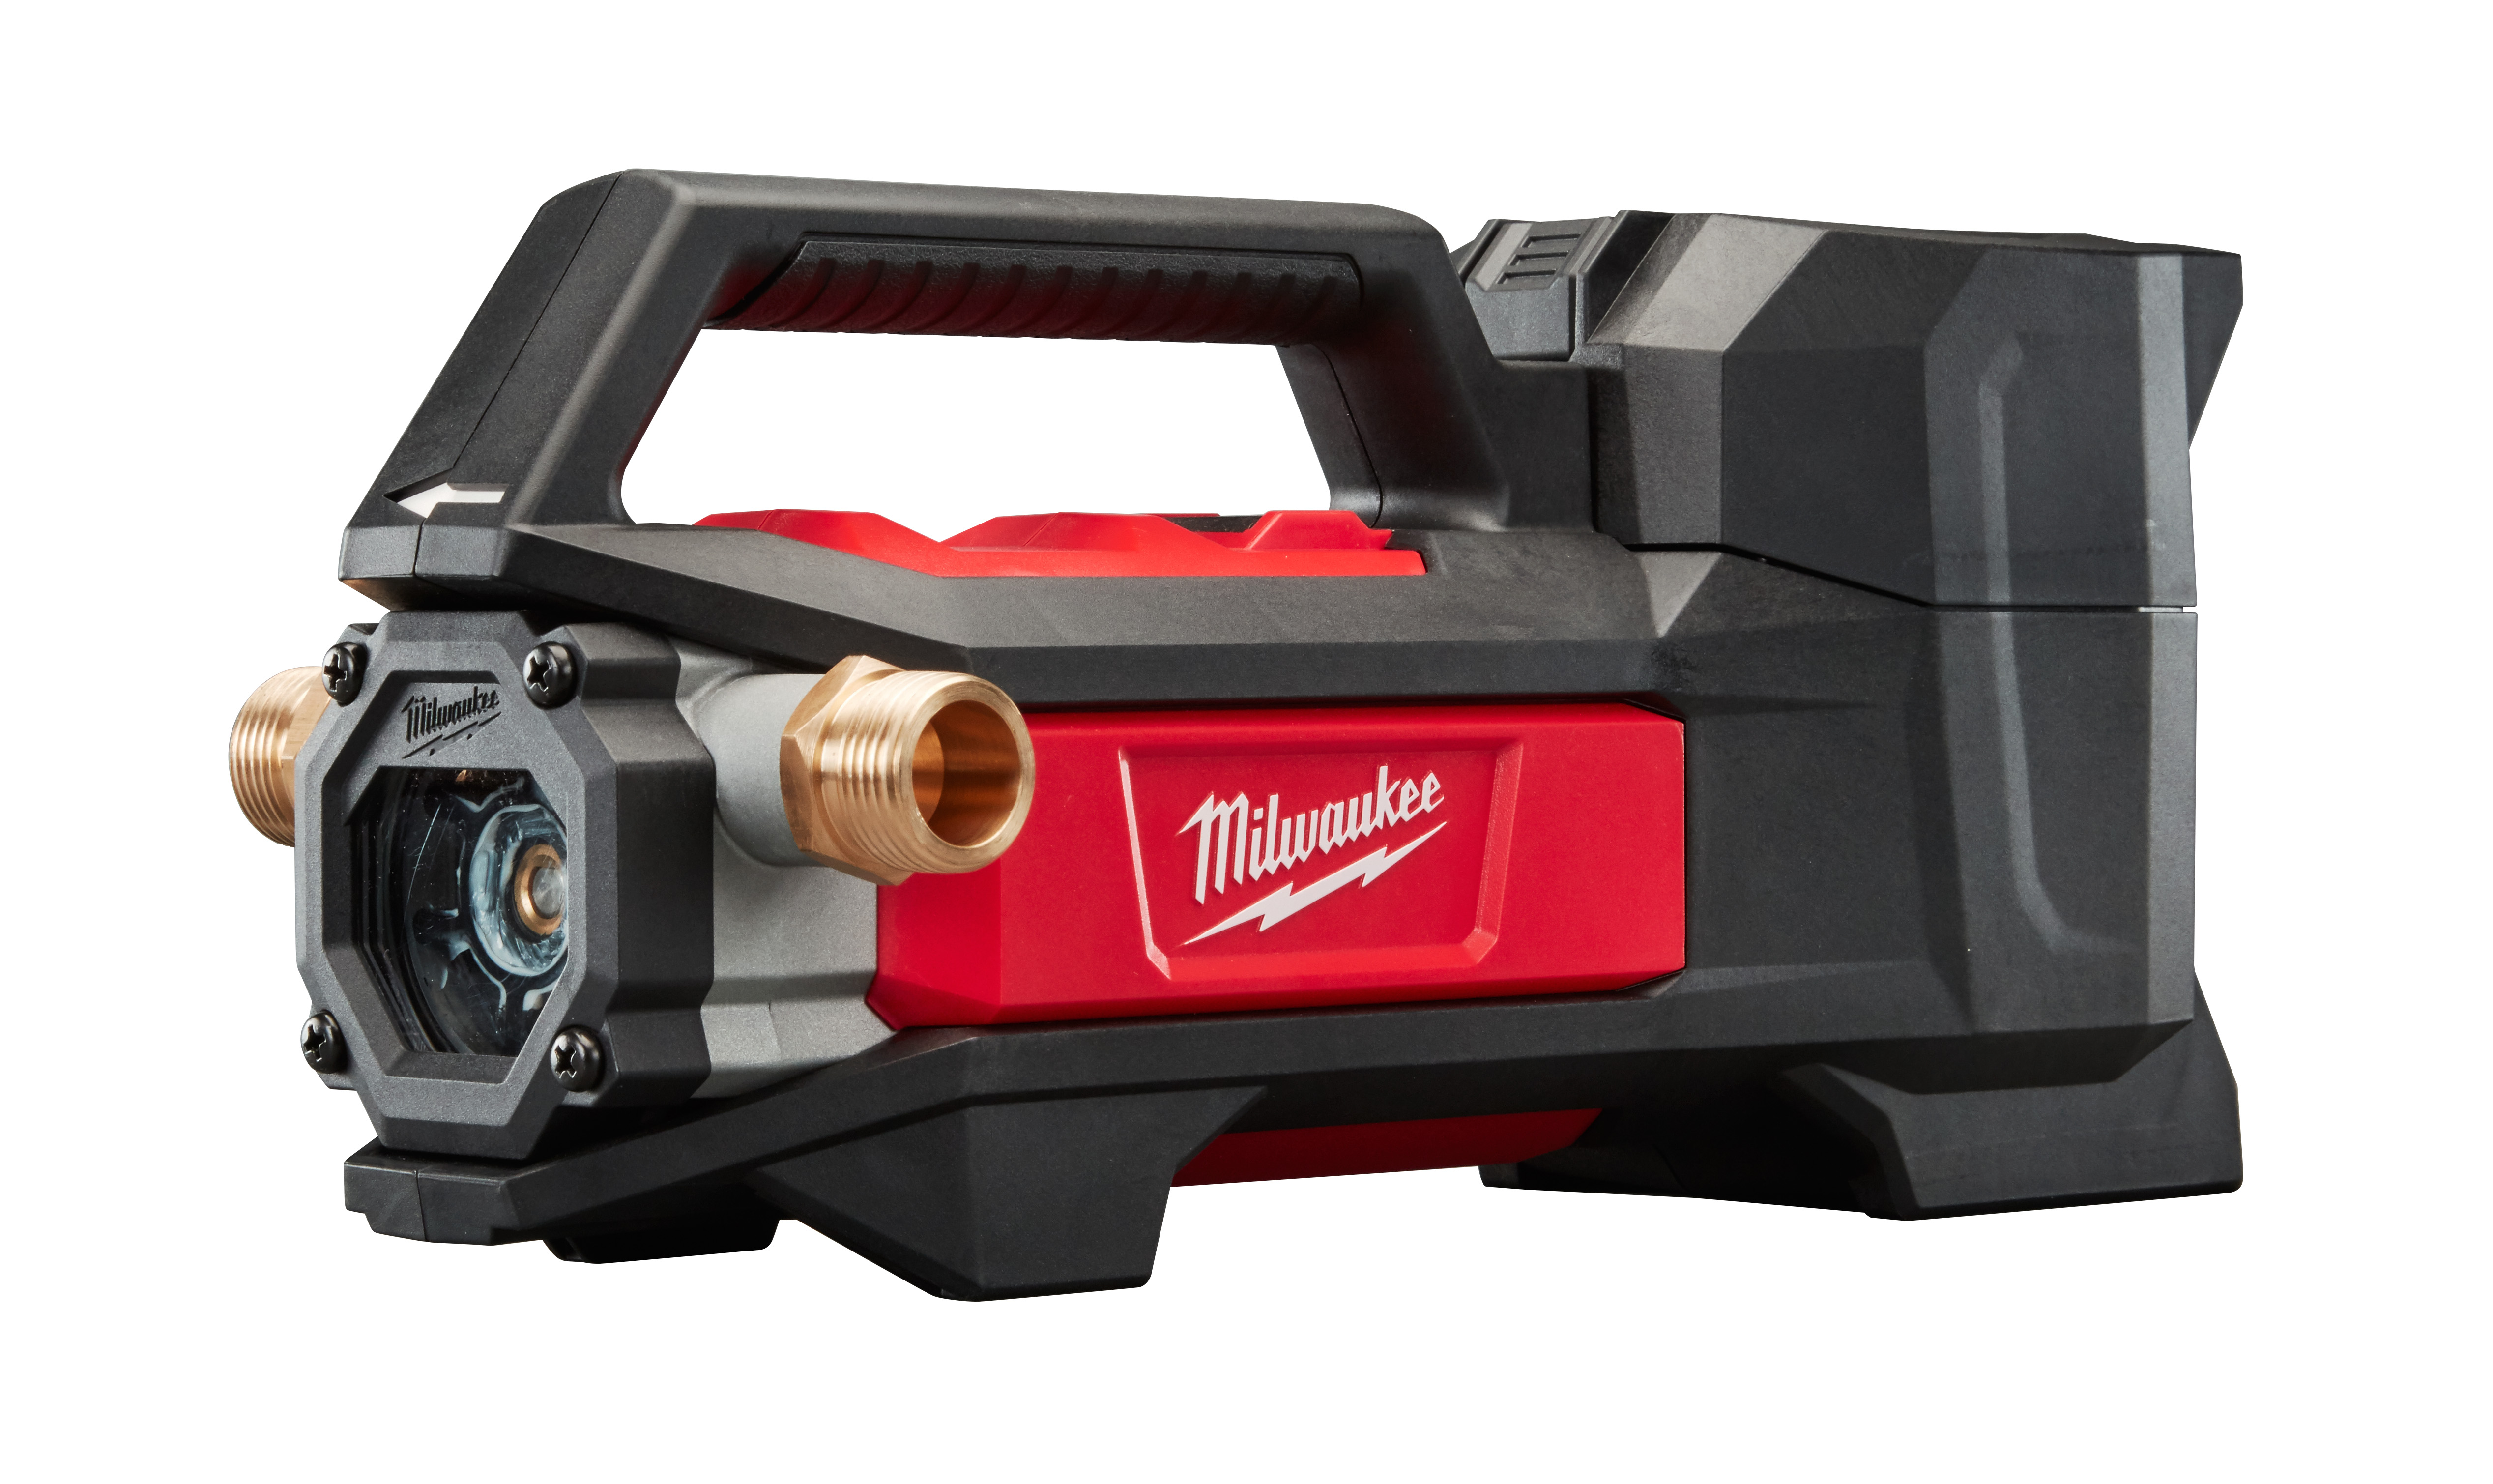 Milwaukee® M18™ 2771-20 Cordless Transfer Pump, 480 gph Flow Rate, 3/4 in Inlet x 3/4 in Outlet, 0.25 hp, Nitrile Rubber/Reinforced Plastic, Import